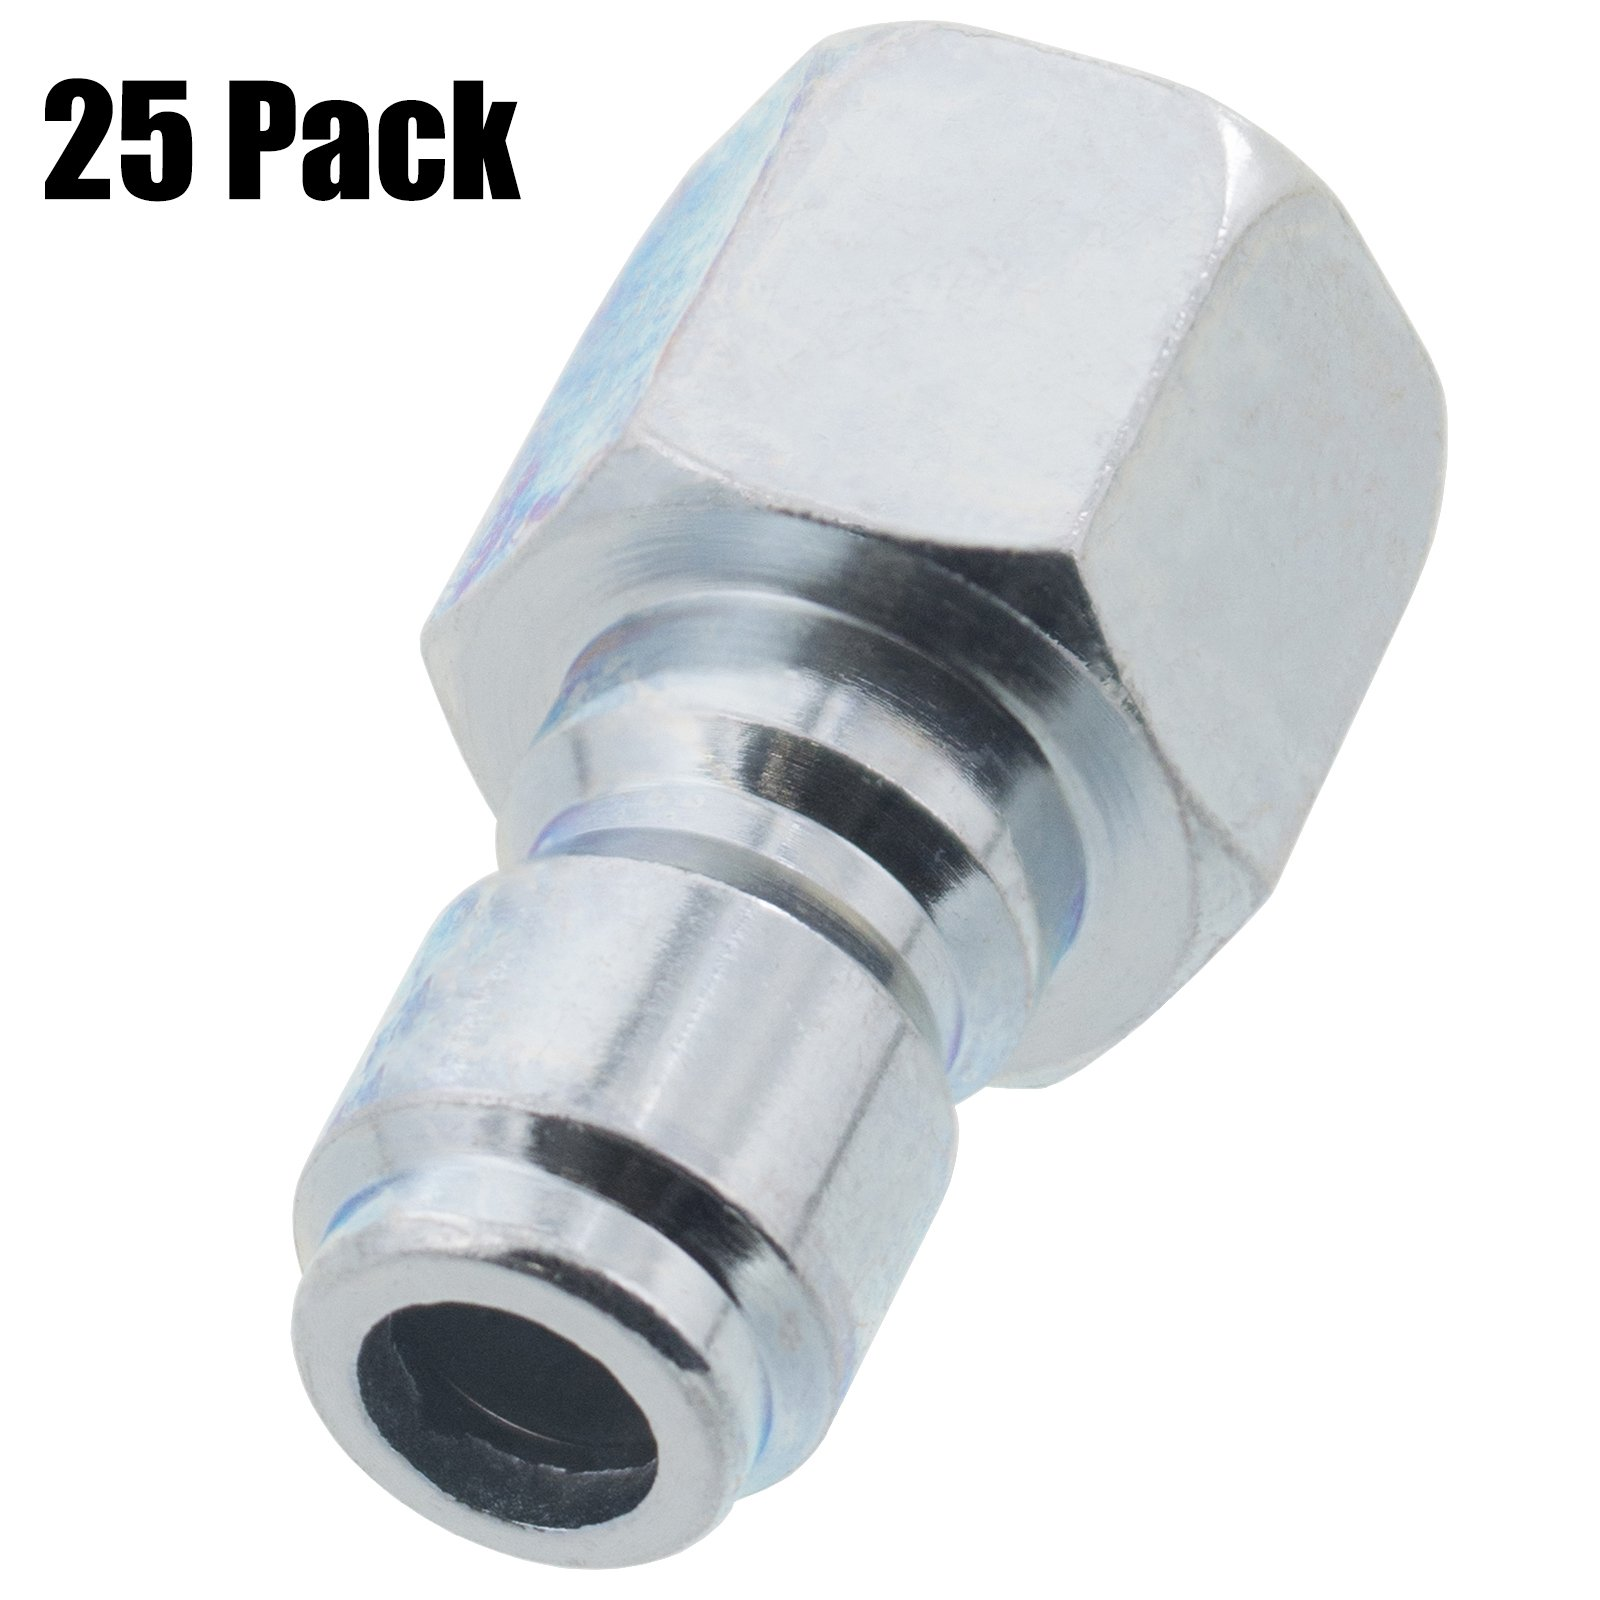 Erie Tools 25 Pressure Washer 3/8in. Female NPT to Quick Connect Plug Zinc Plated Coupler High Temp 4000 PSI 10.5 GPM by Erie Tools